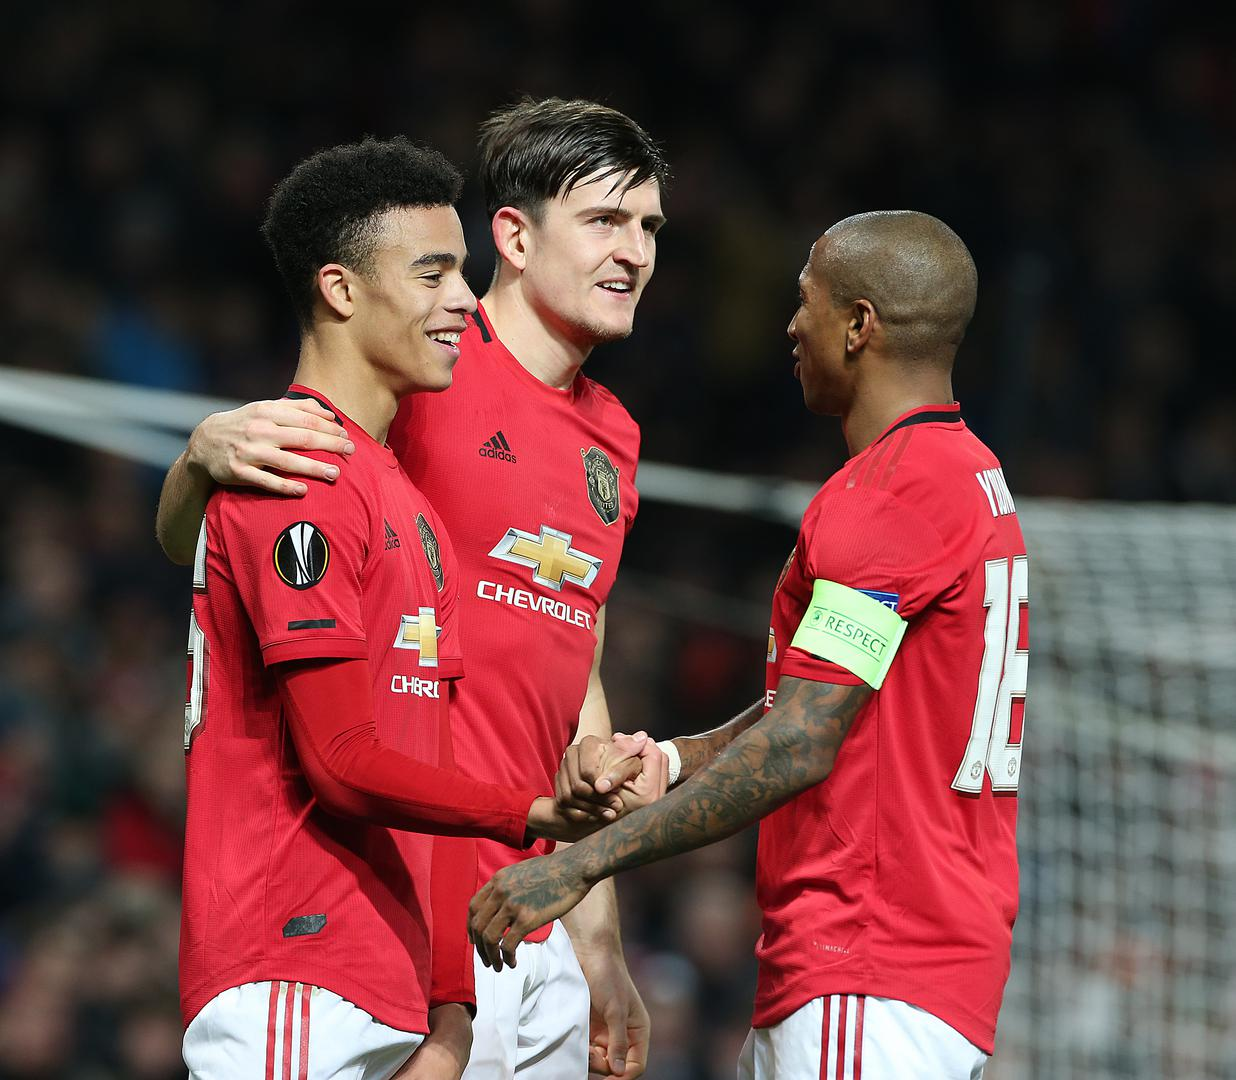 Mason Greenwood, Harry Maguire and Ashley Young celebrate goal against AZ Alkmaar